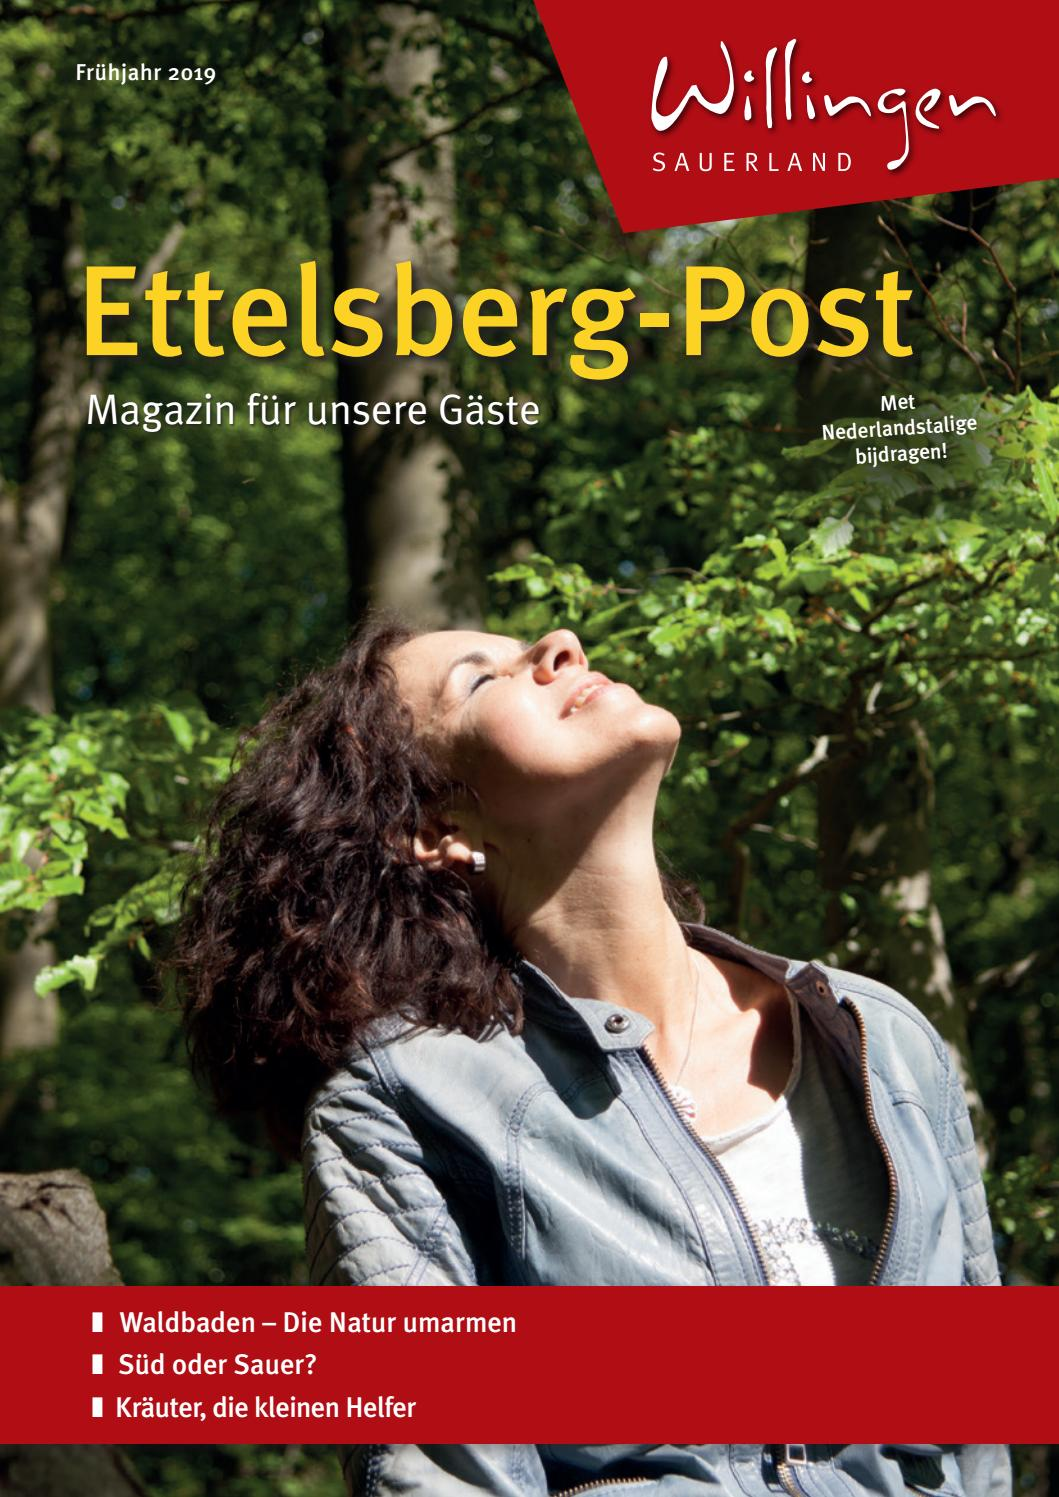 Ettelsberg Post Frühling 2019 by Willingen issuu